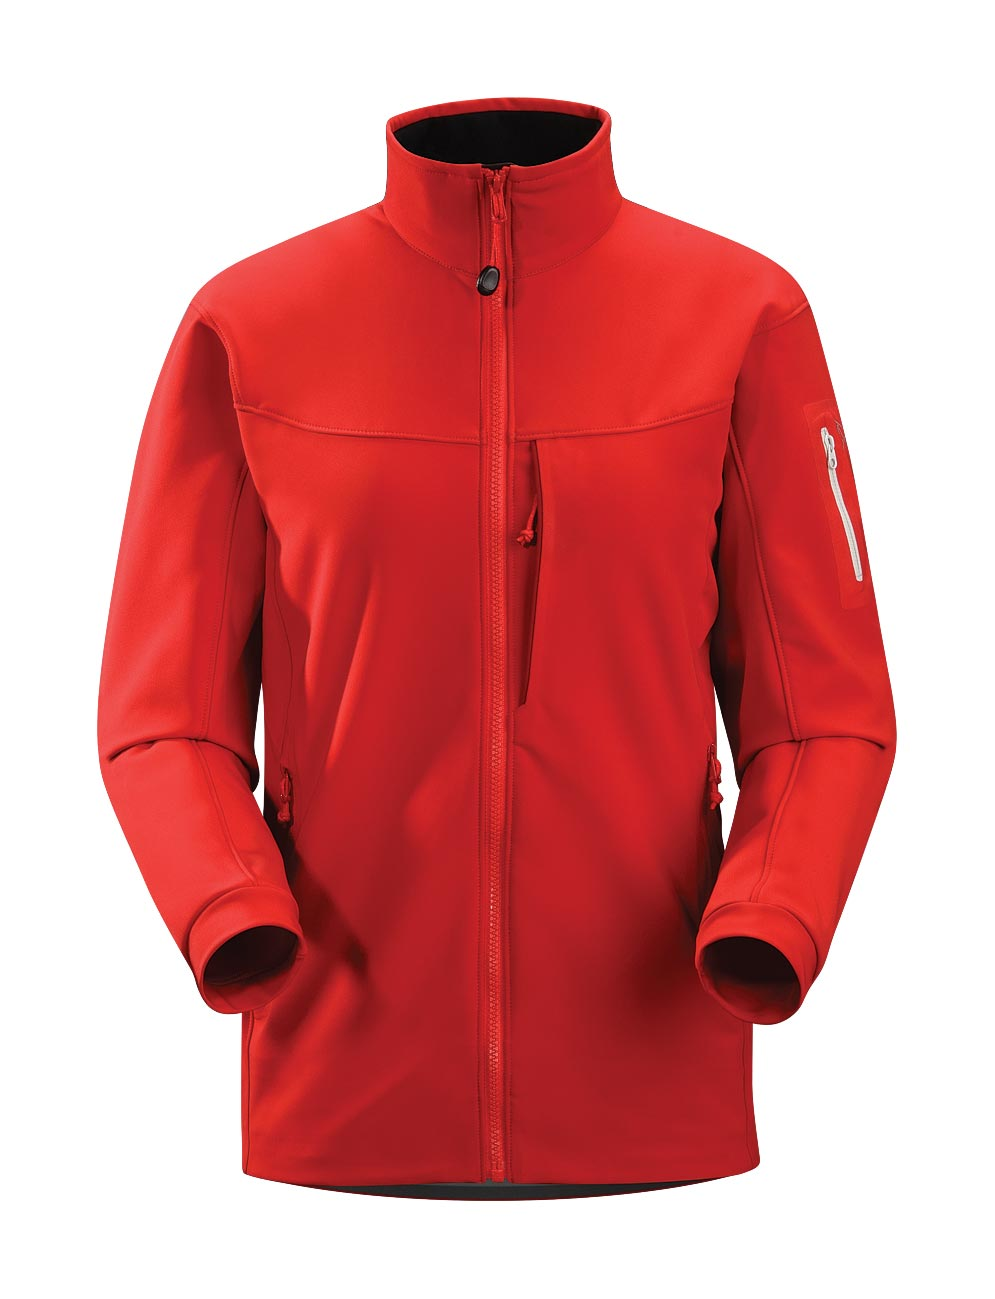 Arcteryx Jackets Women Paintbrush Gamma MX Jacket